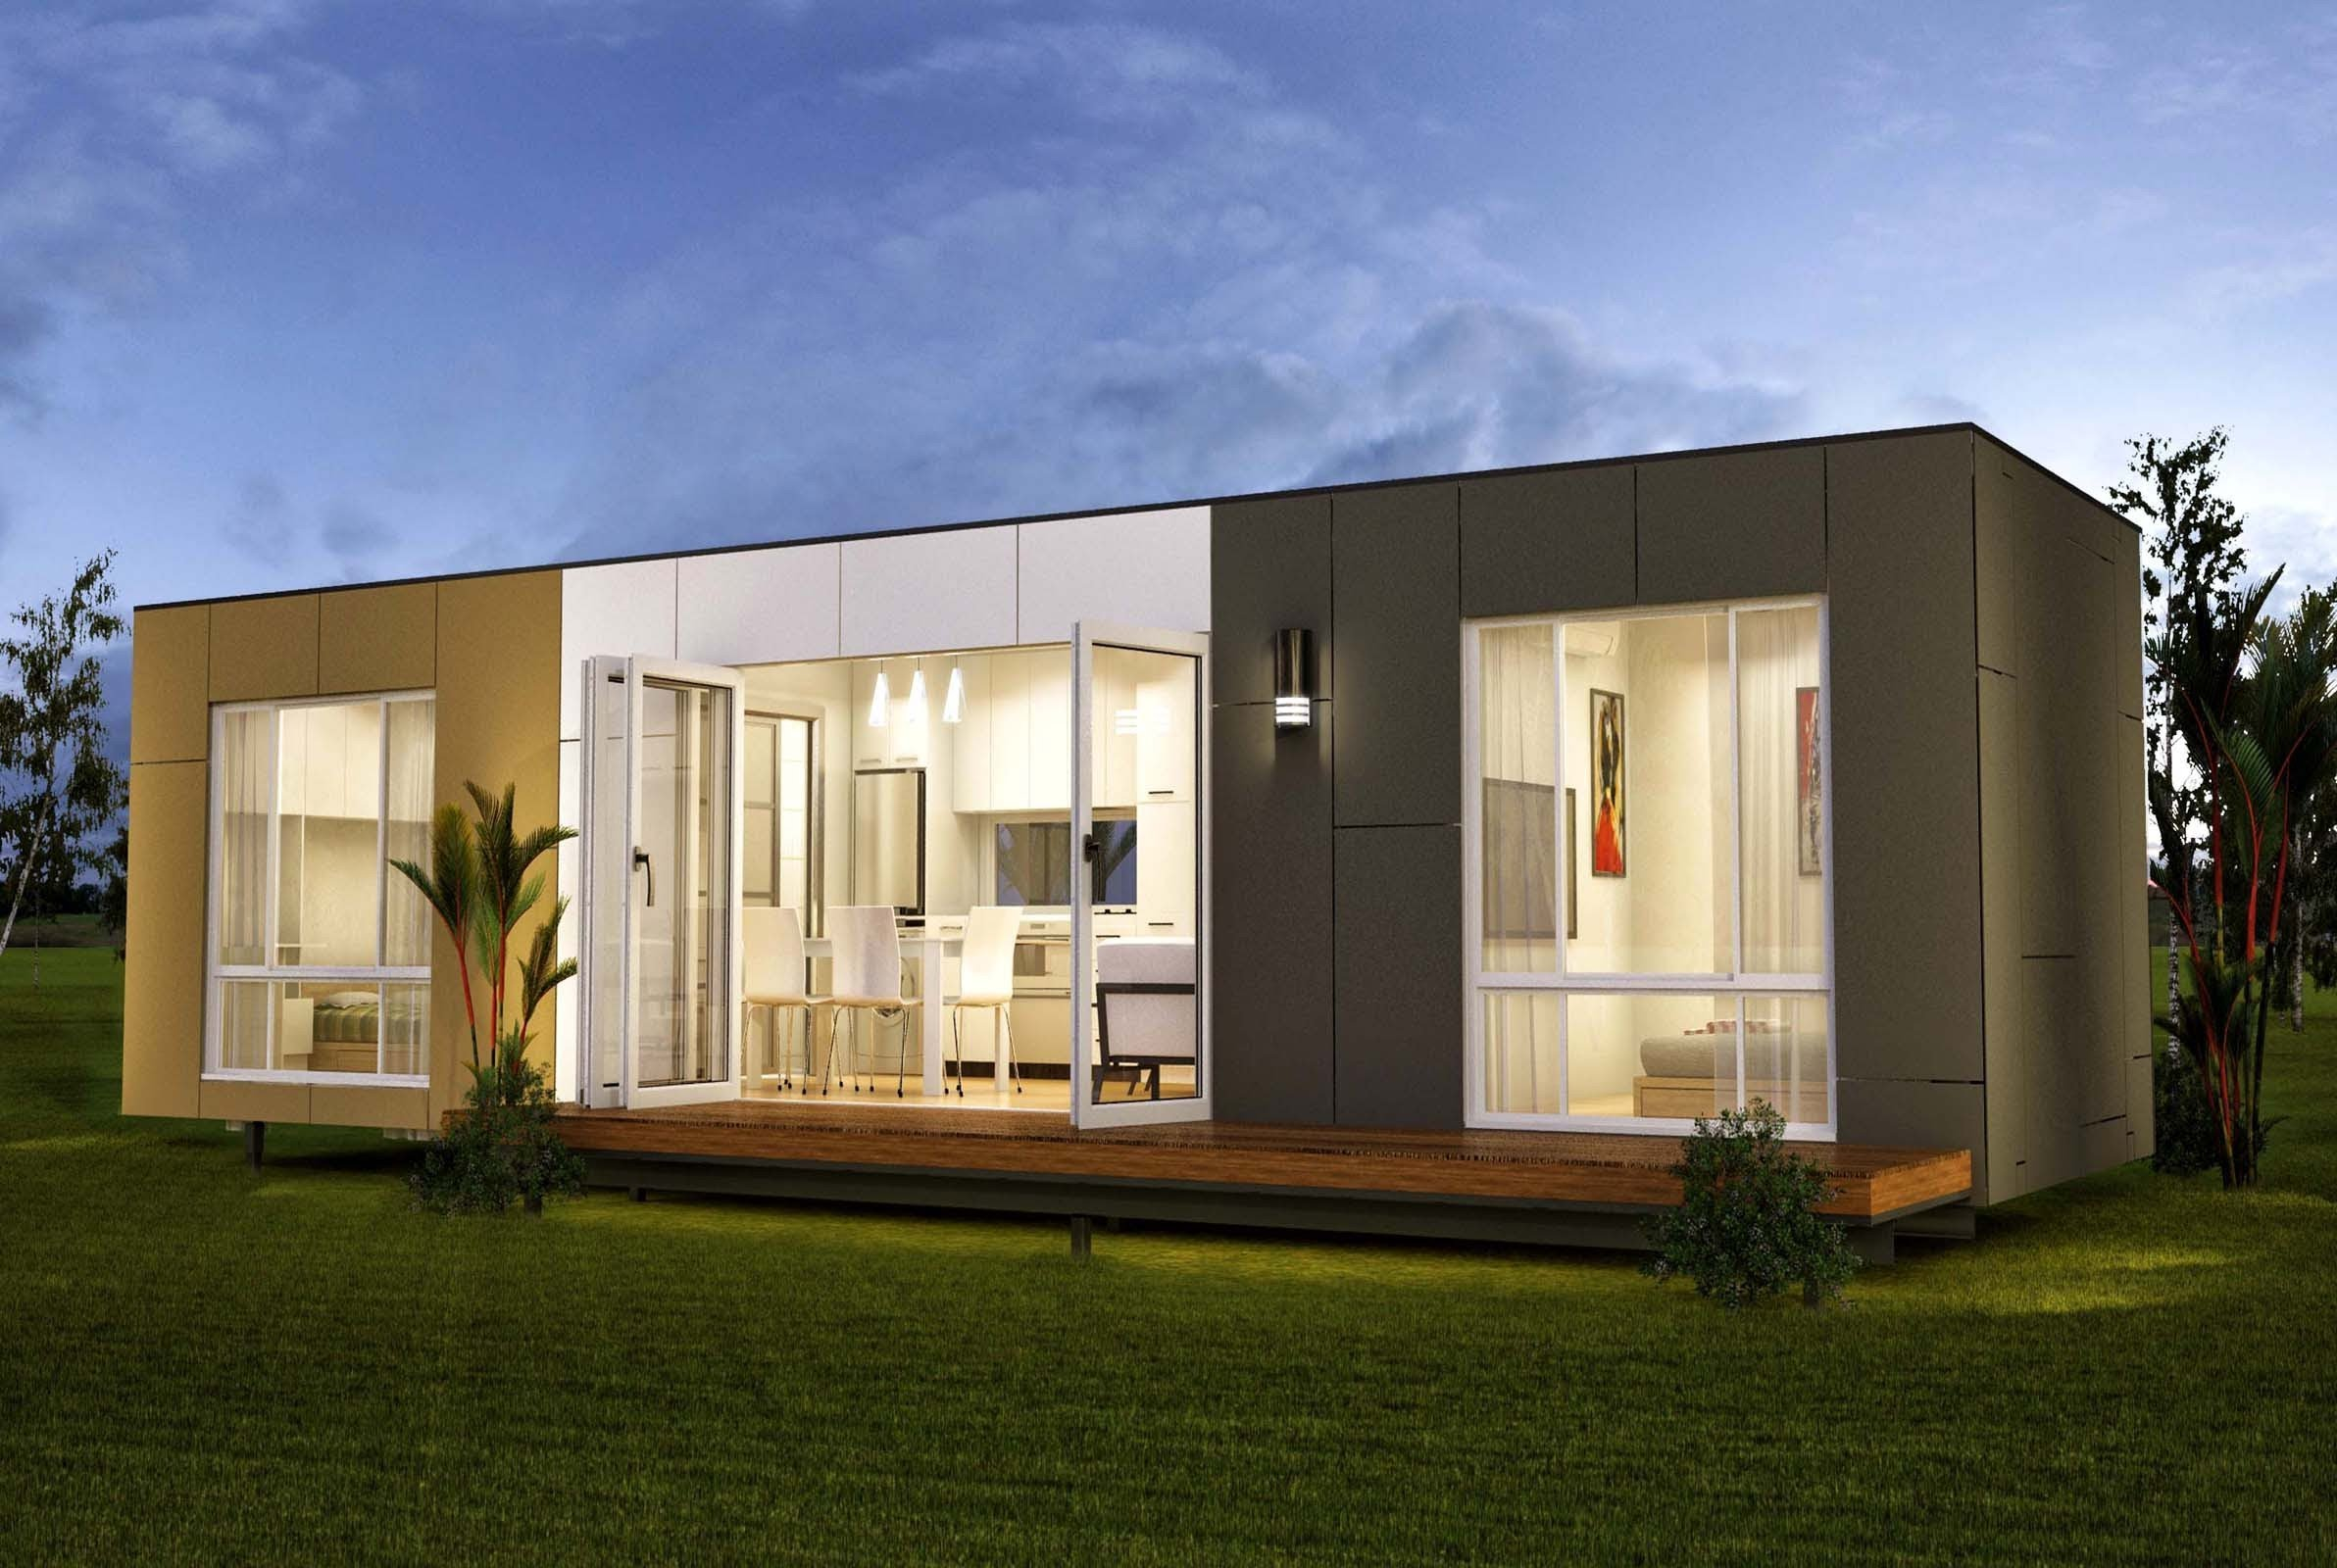 Innovative Prefab Container Homes Design And Ideas